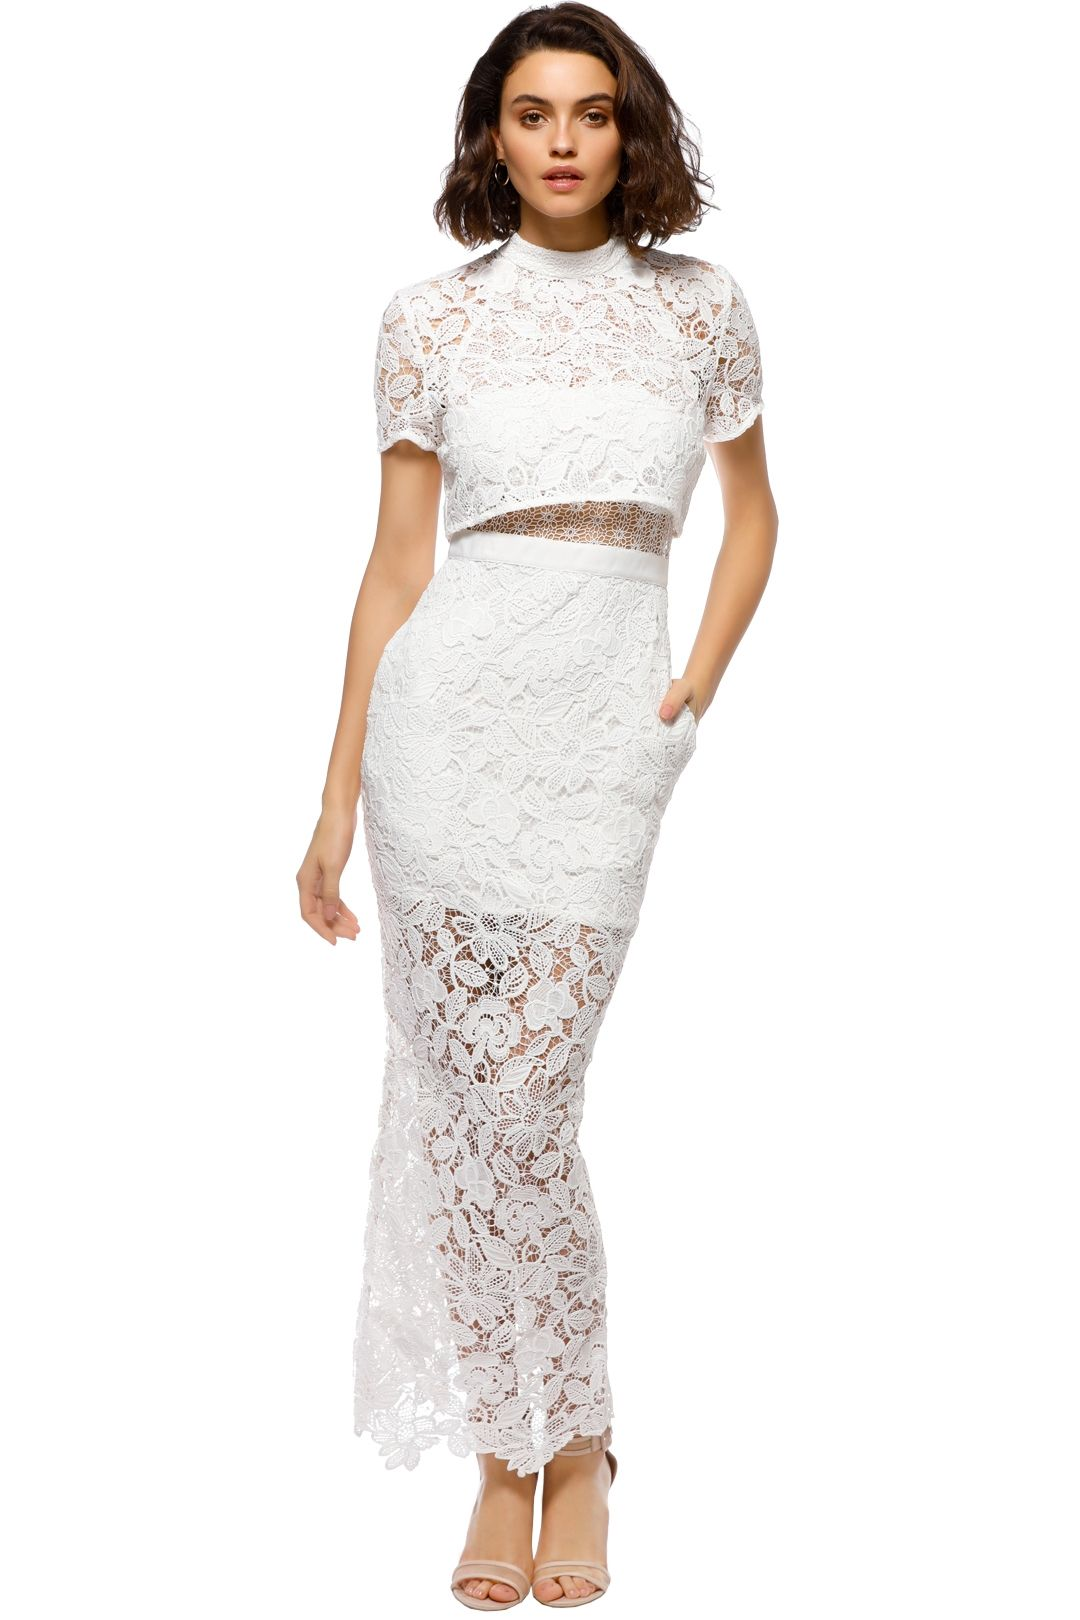 Self Portrait - Marcela Bridal Dress - White - Front